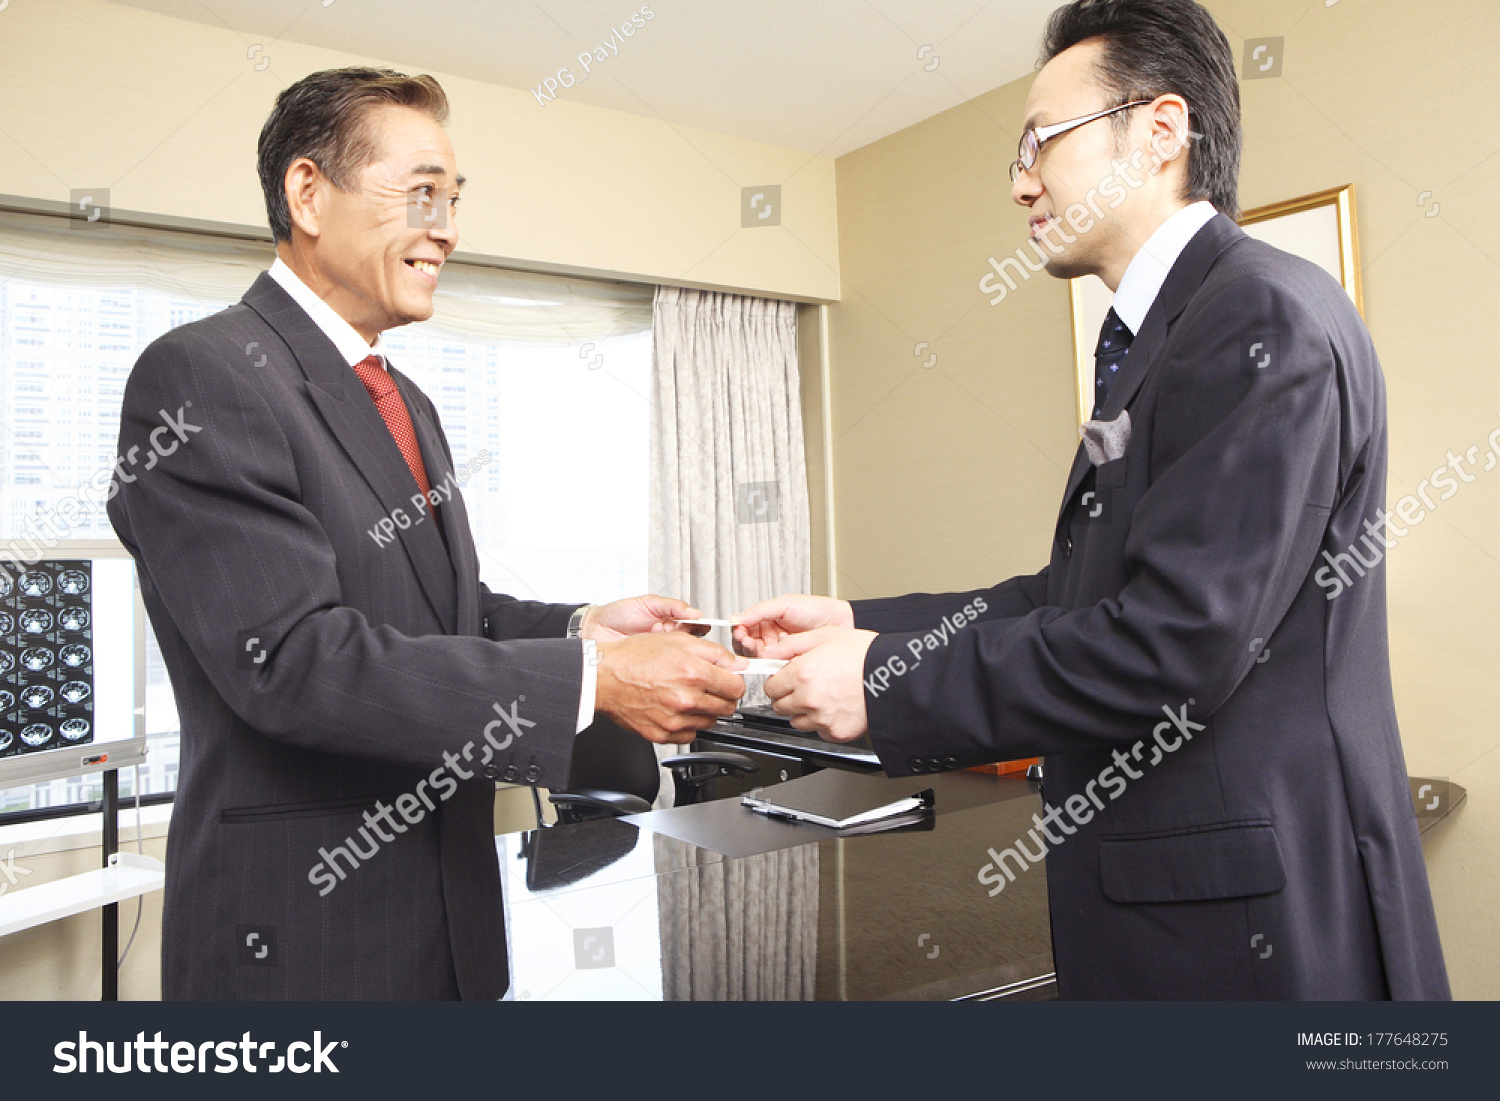 Japanese Businessman Exchange Business Cards Stock Photo (Royalty ...